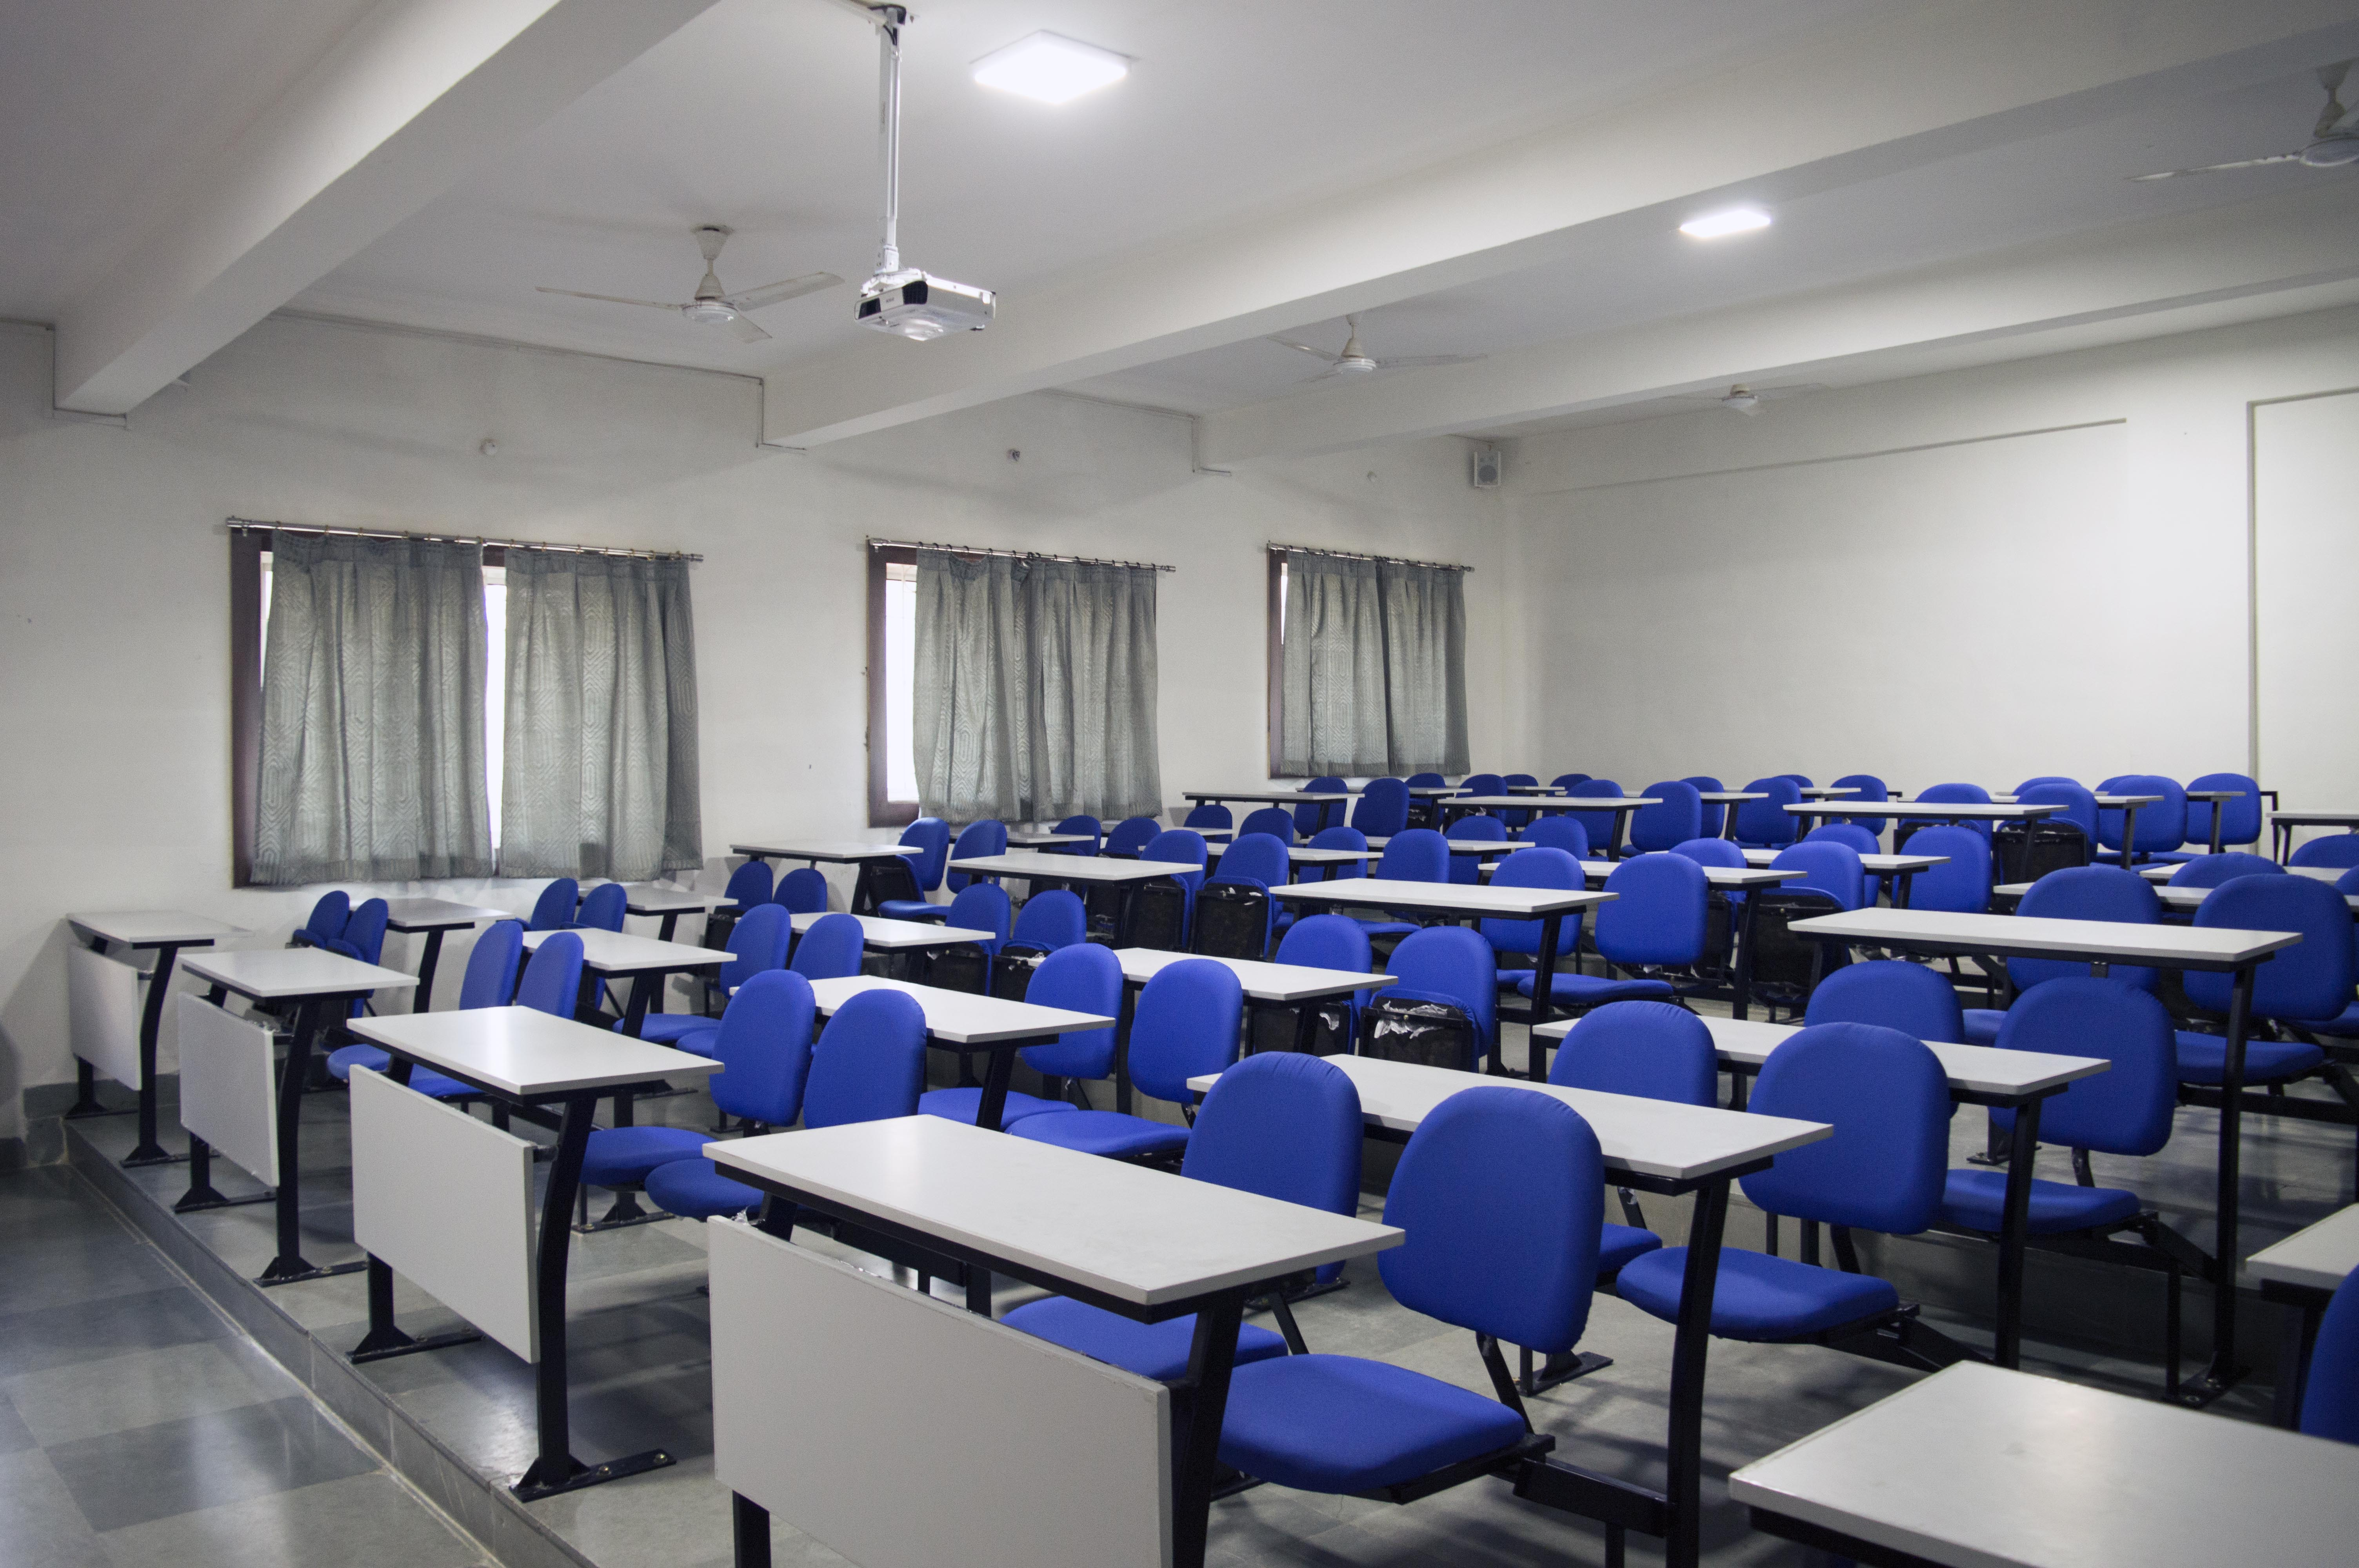 engineering colleges in bhopal, engineering colleges in mp